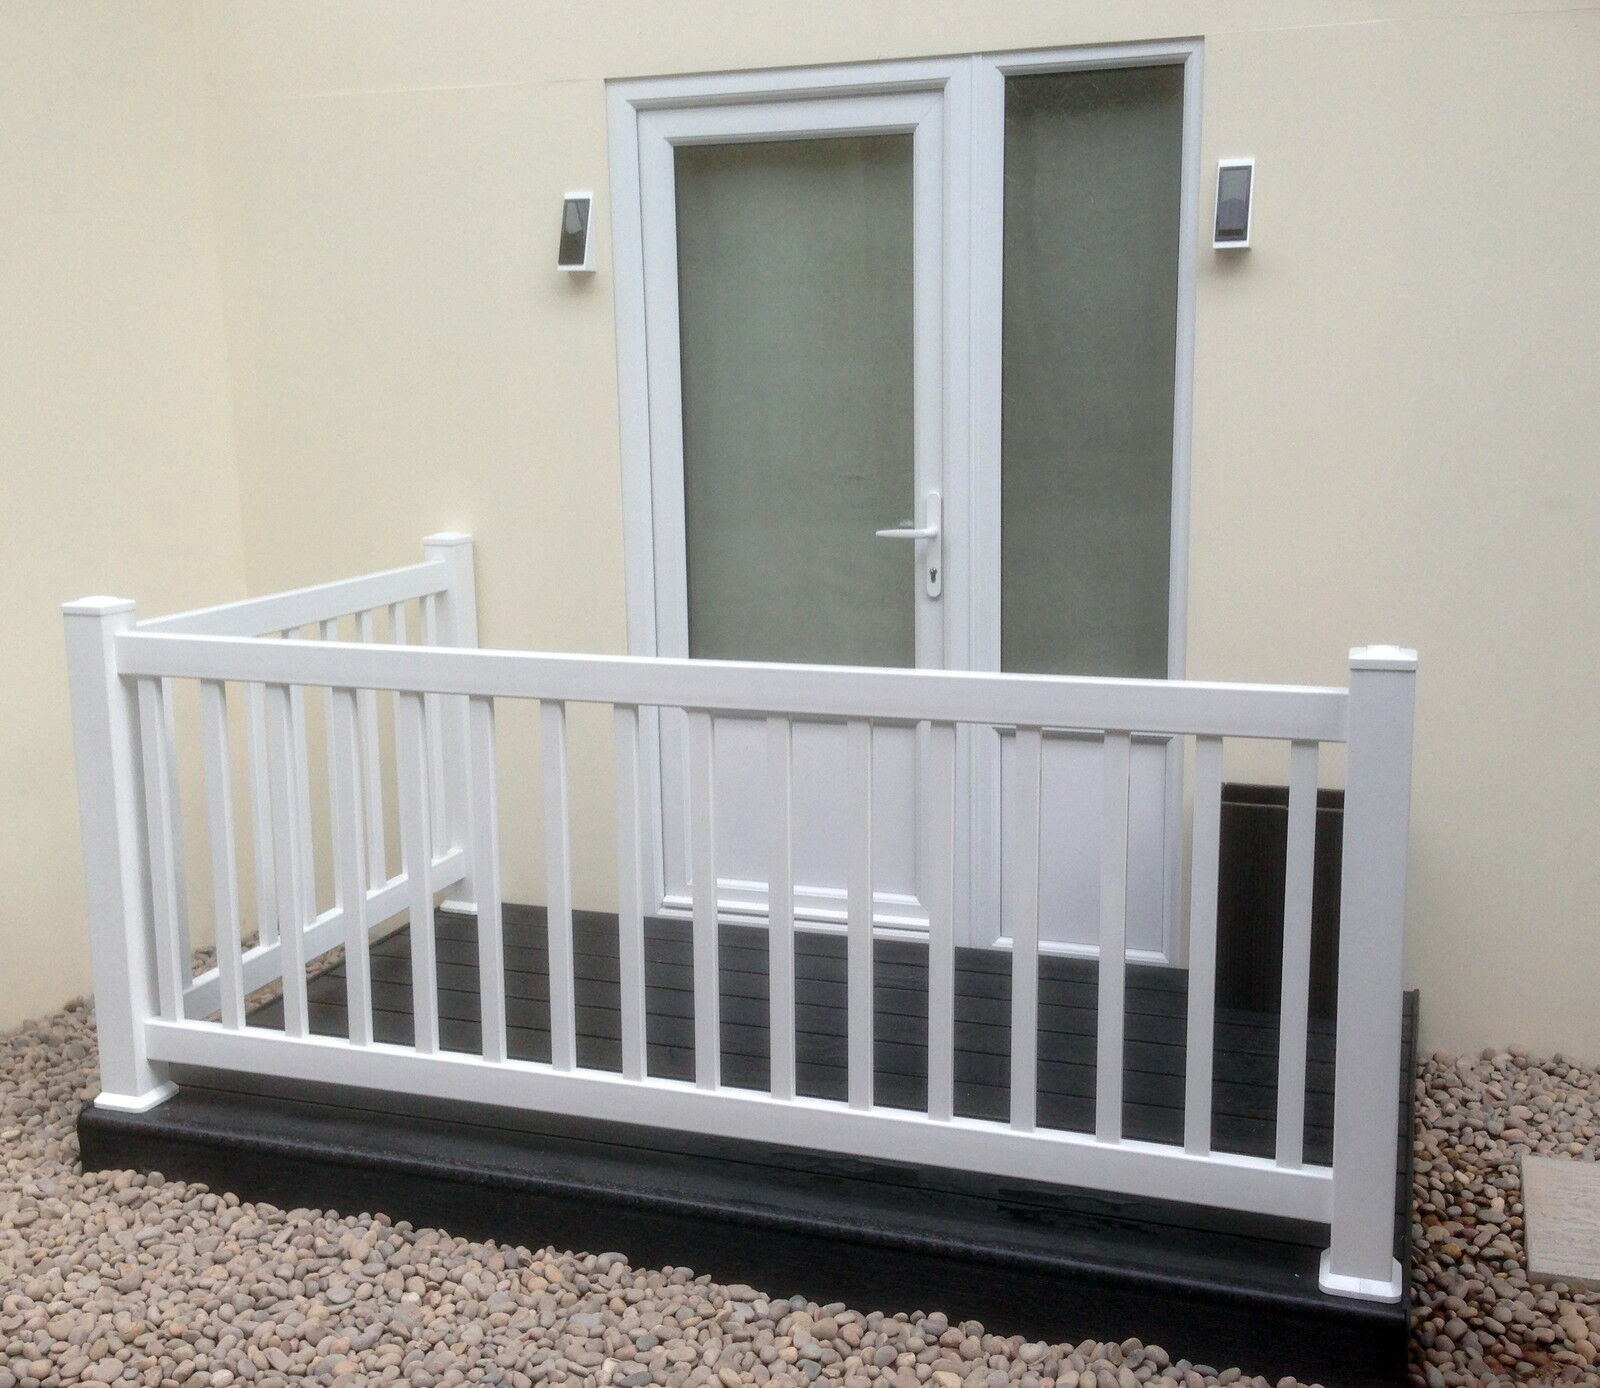 Plastic Balustrade Patio Decking Fencing Panels Or Posts